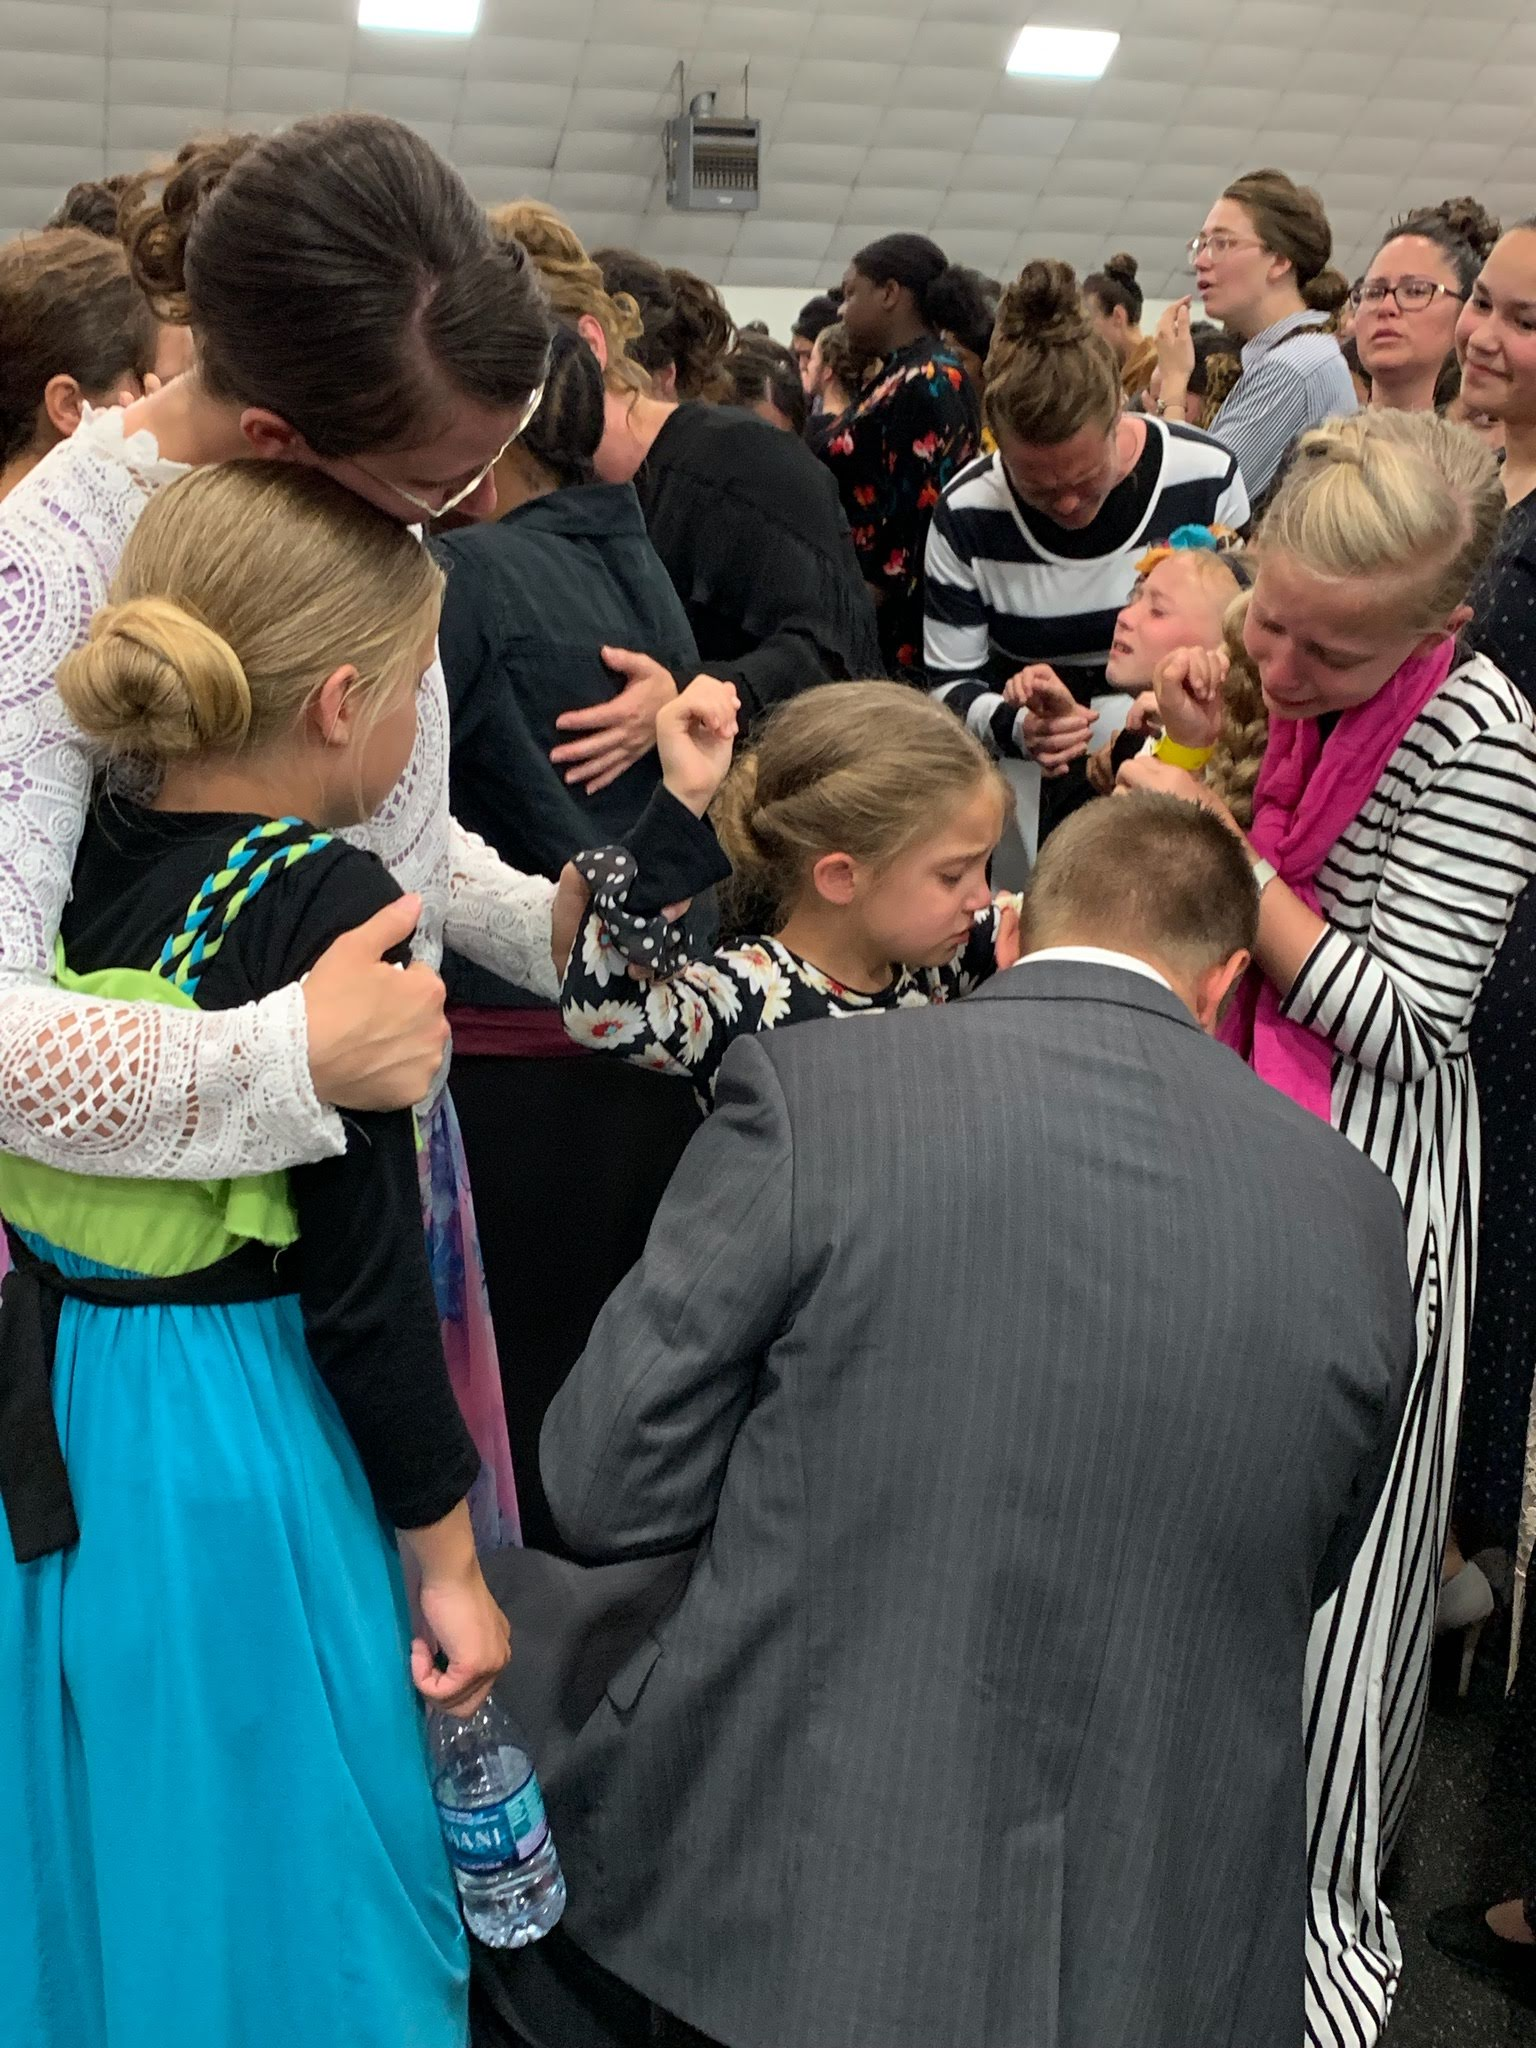 All of the Peterson girls got the Holy Ghost that night. Emily, Mandy and Megan. Thank you Jesus!